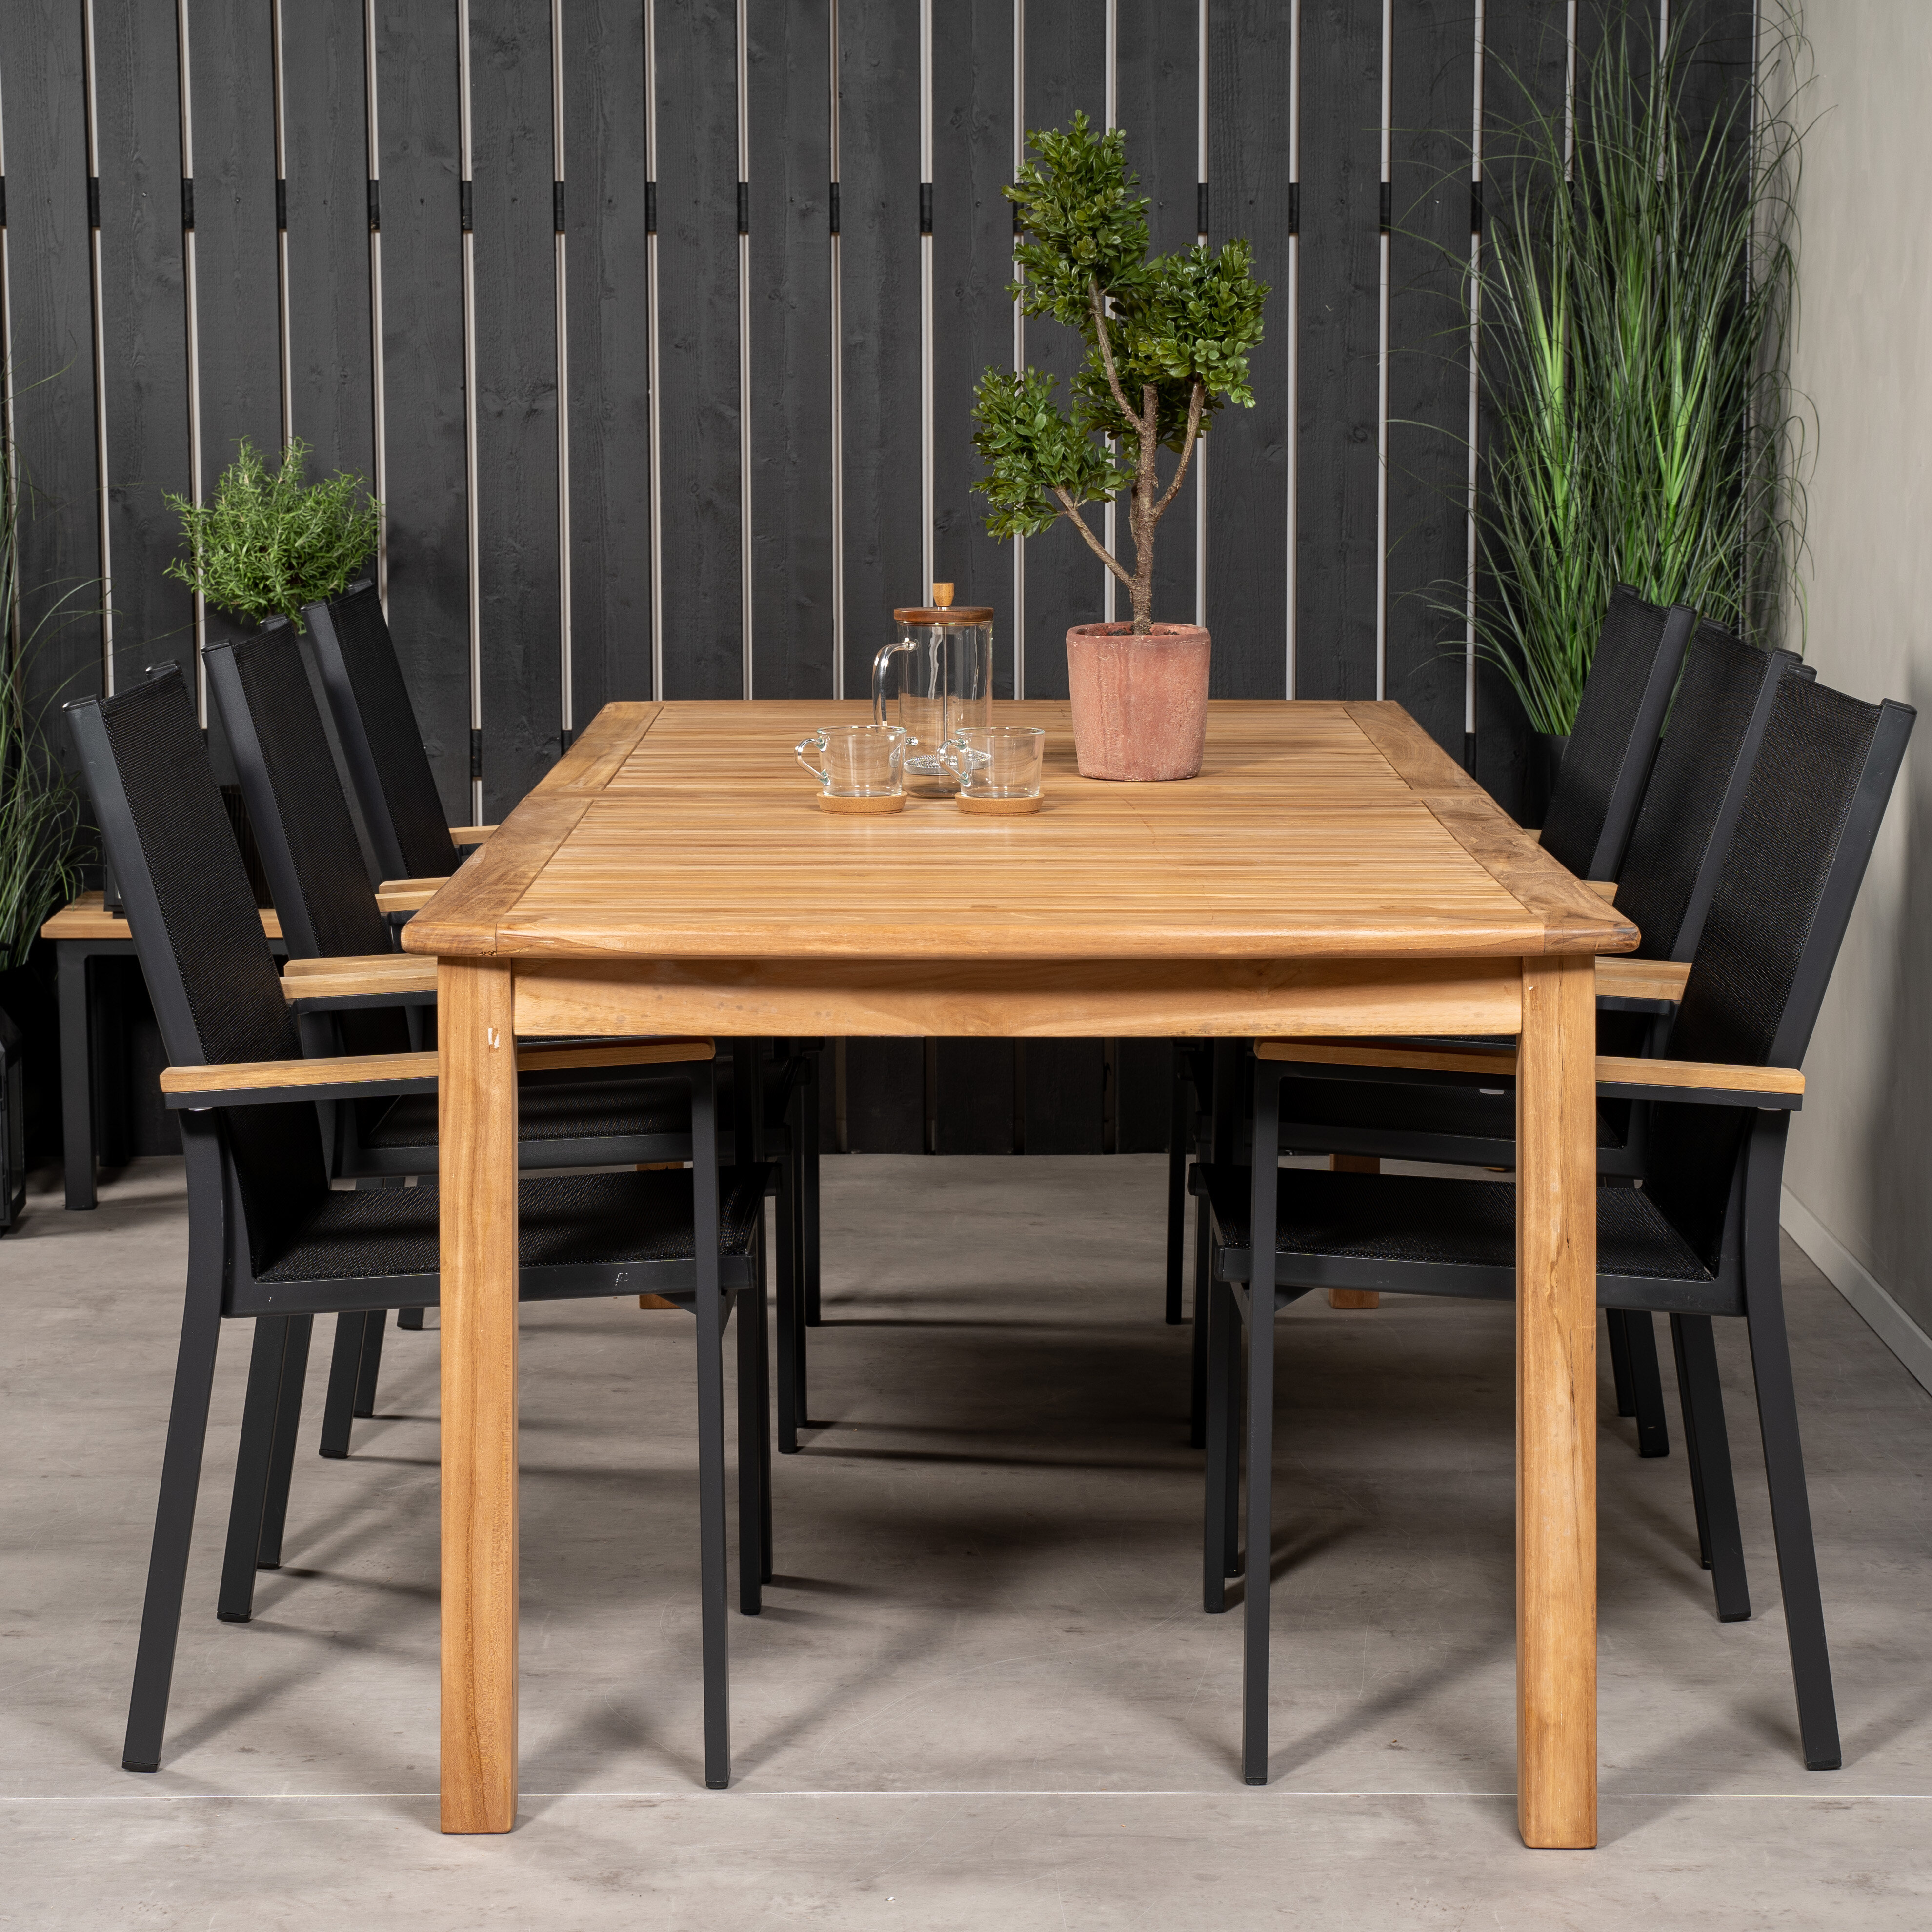 Dakota Fields Baek 6 Seater Dining Set Wayfair Co Uk